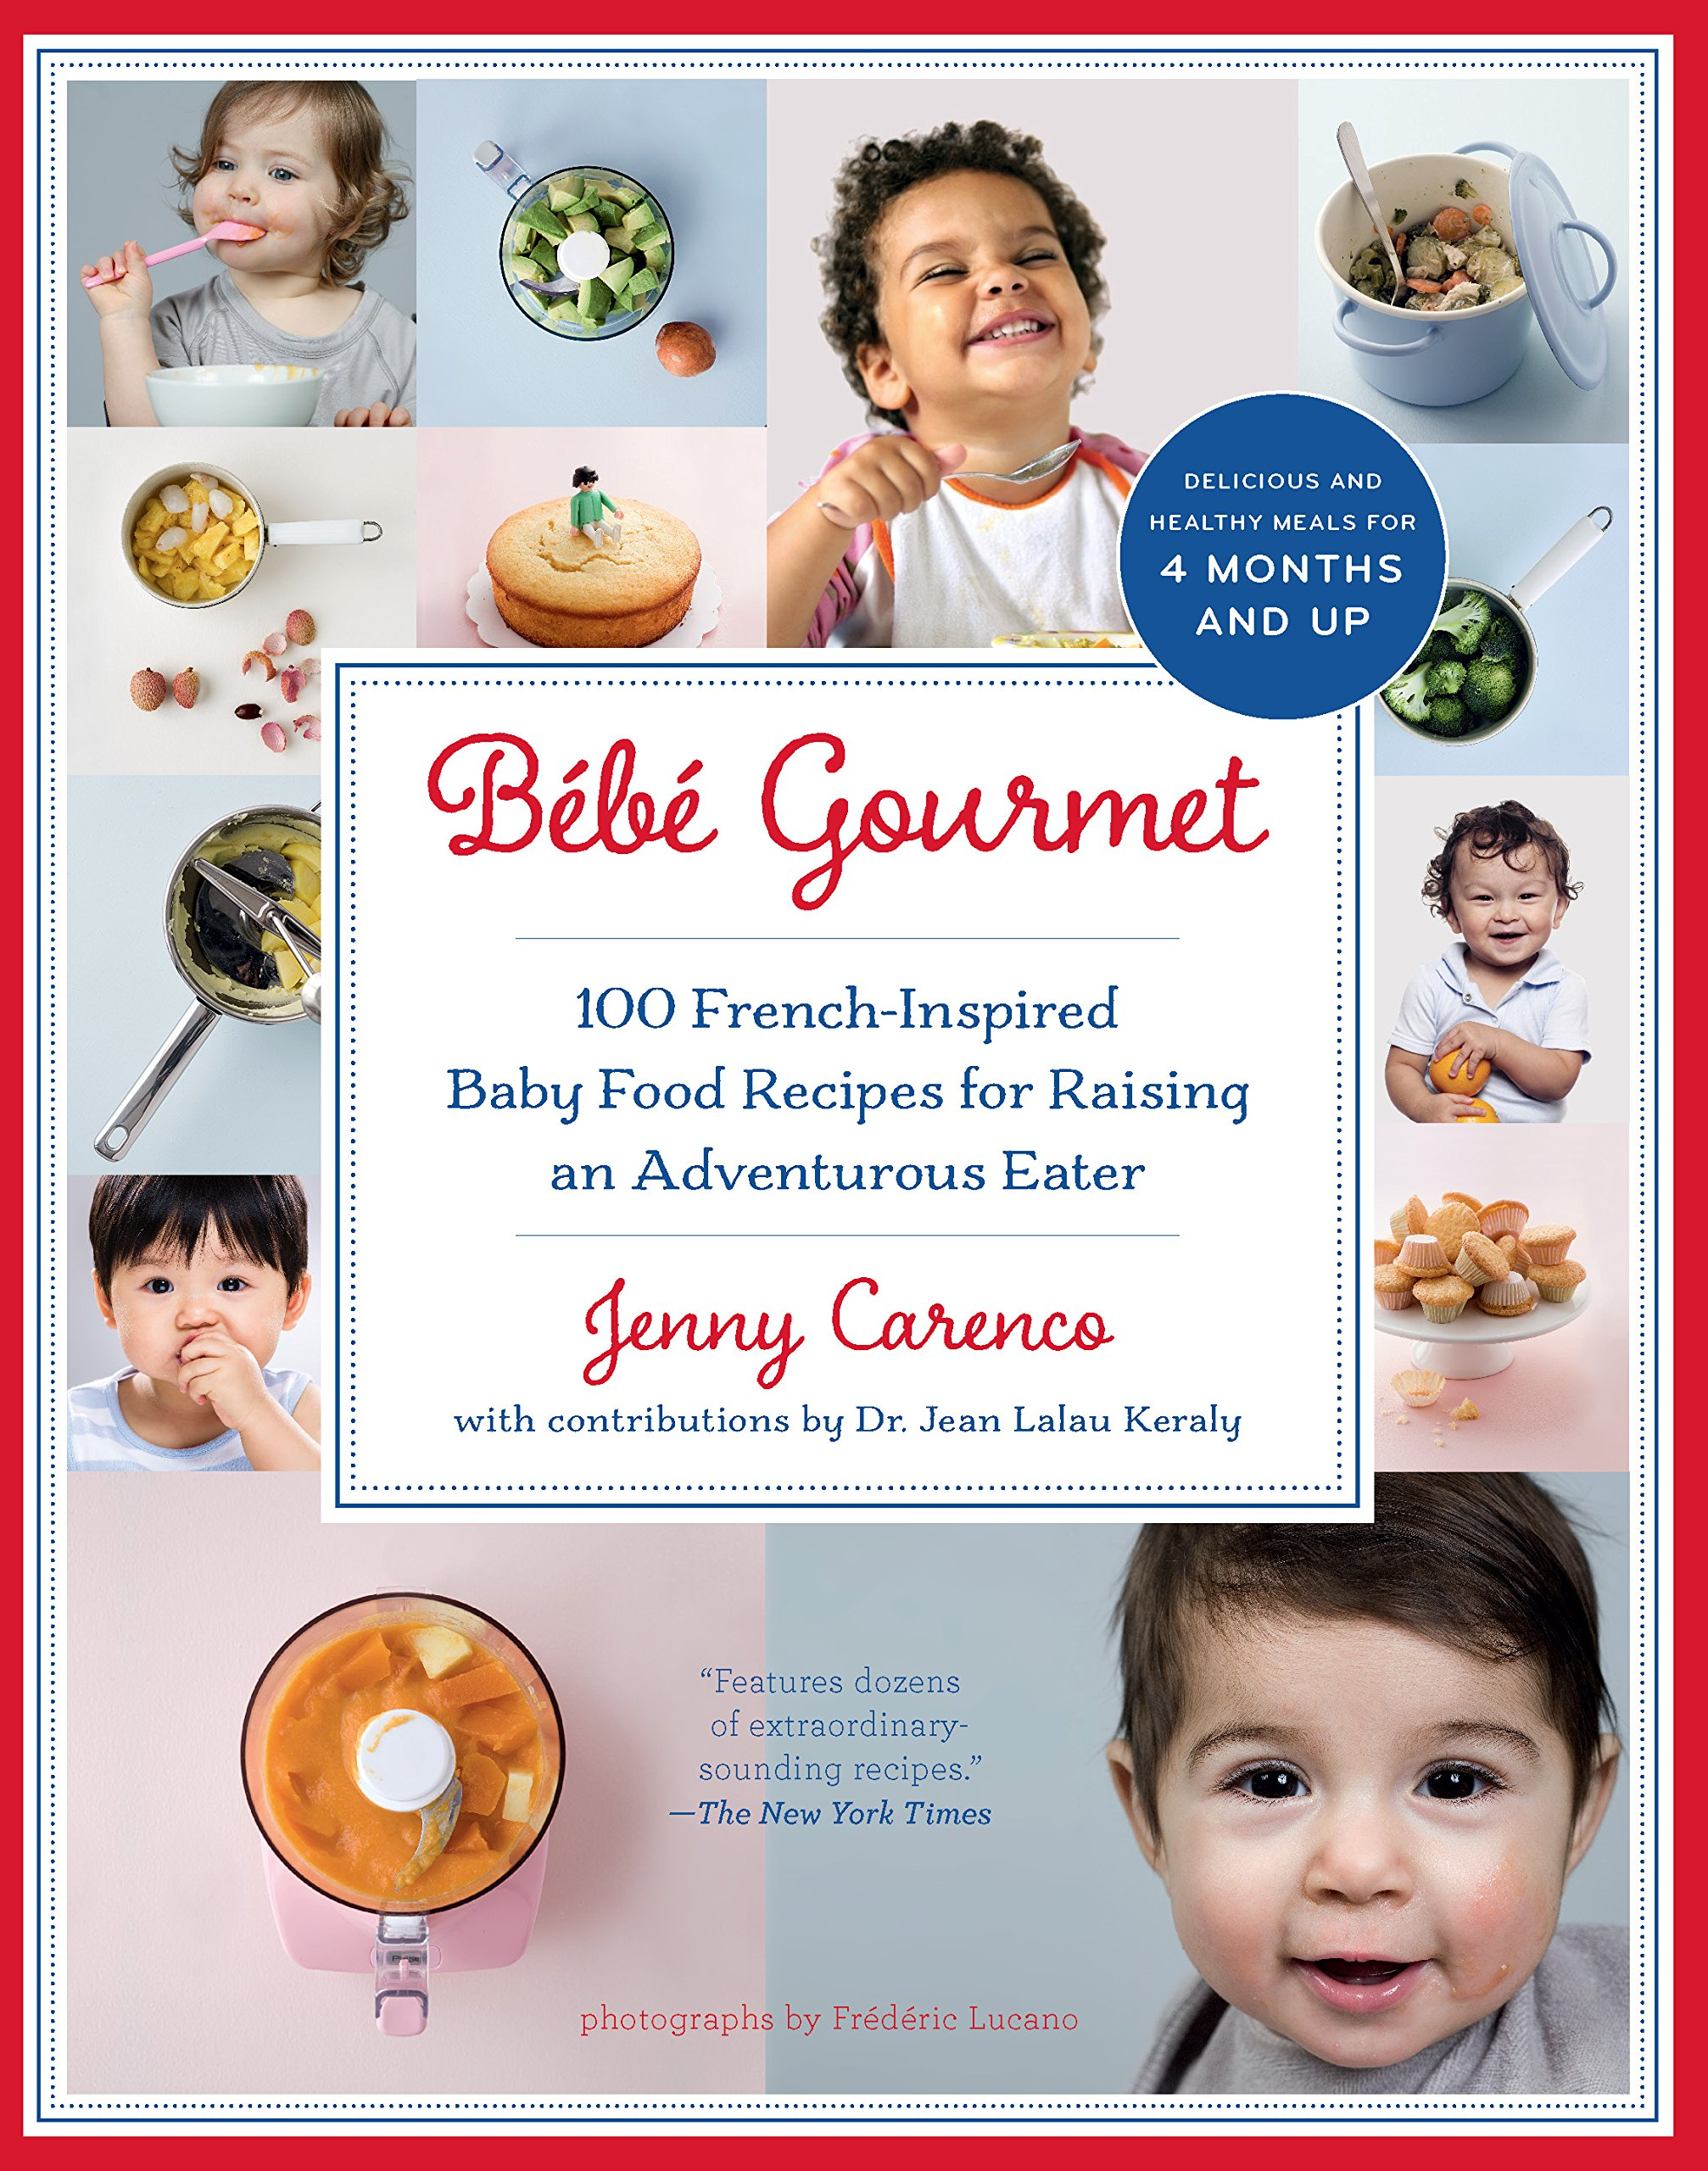 Bb gourmet 100 french inspired baby food recipes for raising an bb gourmet 100 french inspired baby food recipes for raising an adventurous eater jenny carenco dr jean lalau keraly 9781615190706 amazon books forumfinder Choice Image